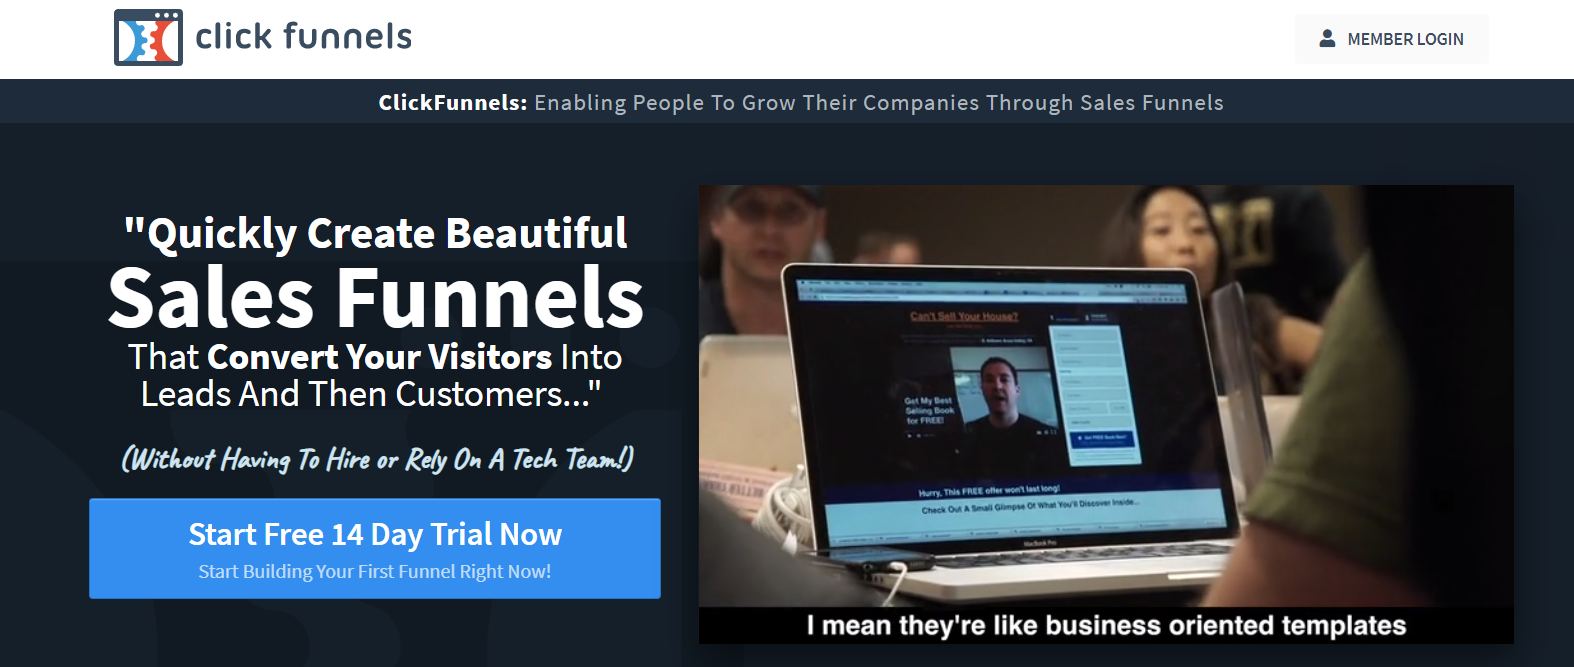 How to Build A Sales Funnel - ClickFunnel